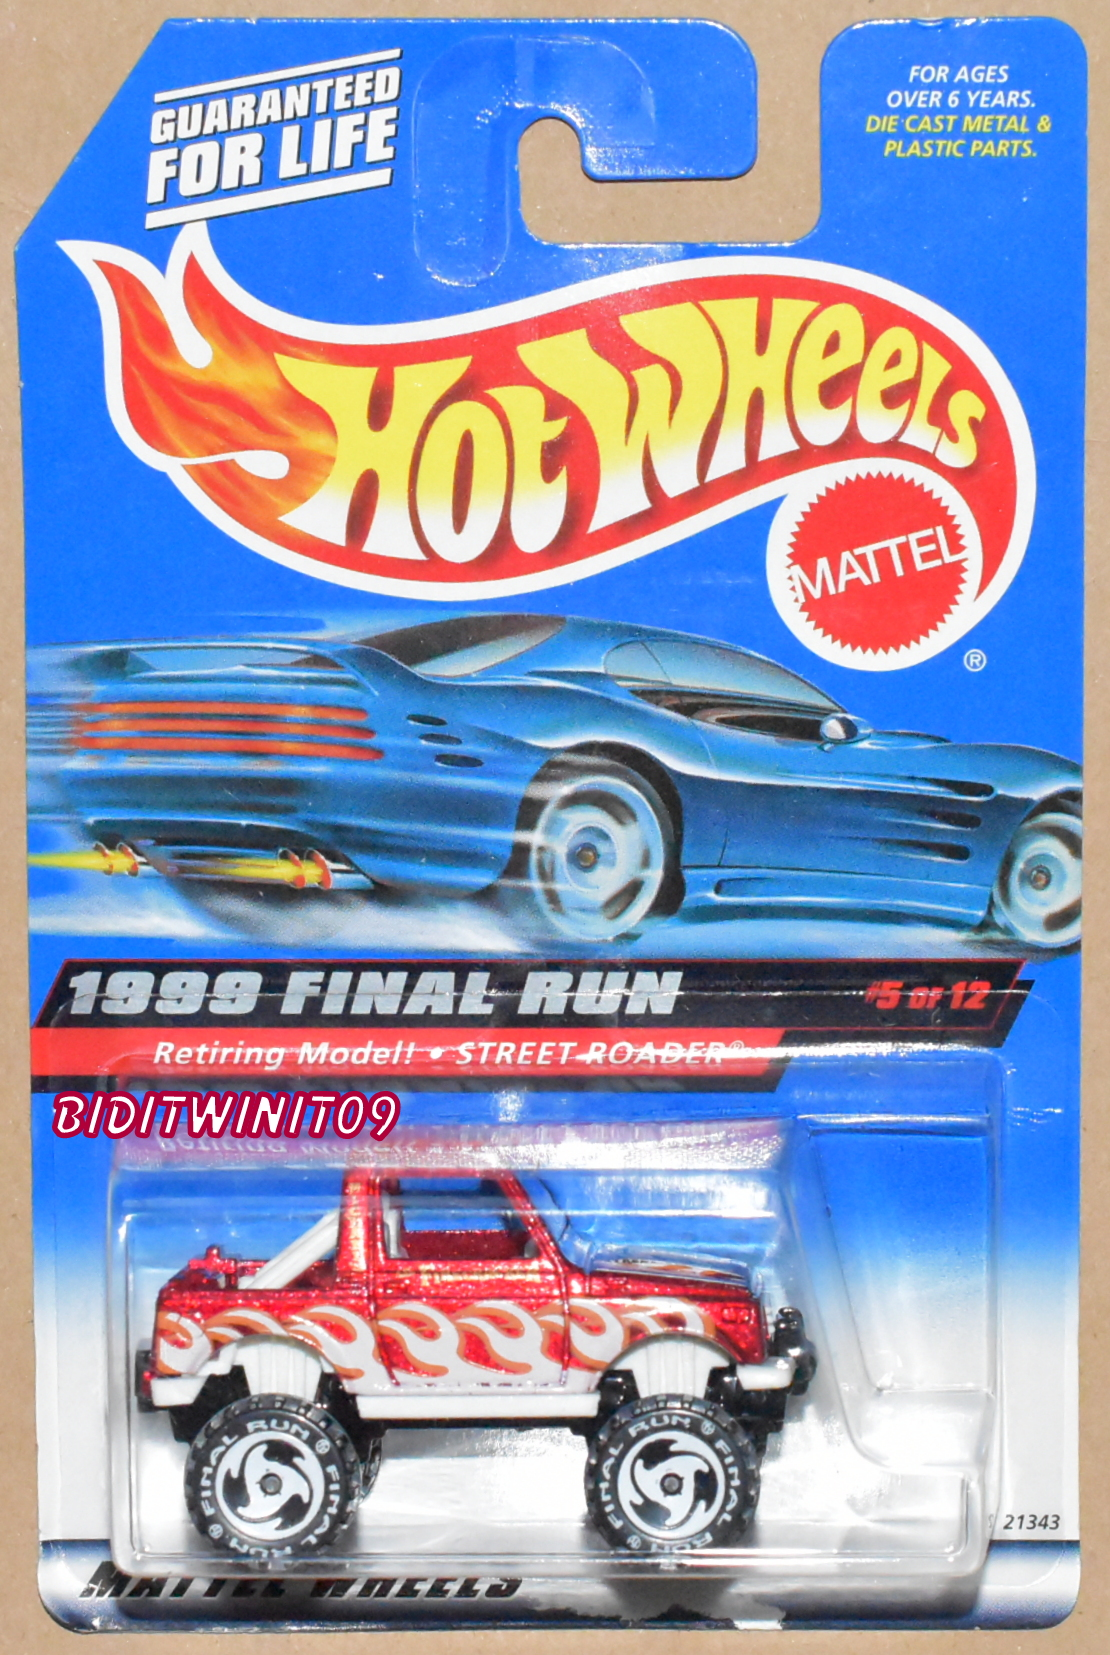 HOT WHEELS 1999 FINAL RUN - RETIRING MODEL - STREET ROADER